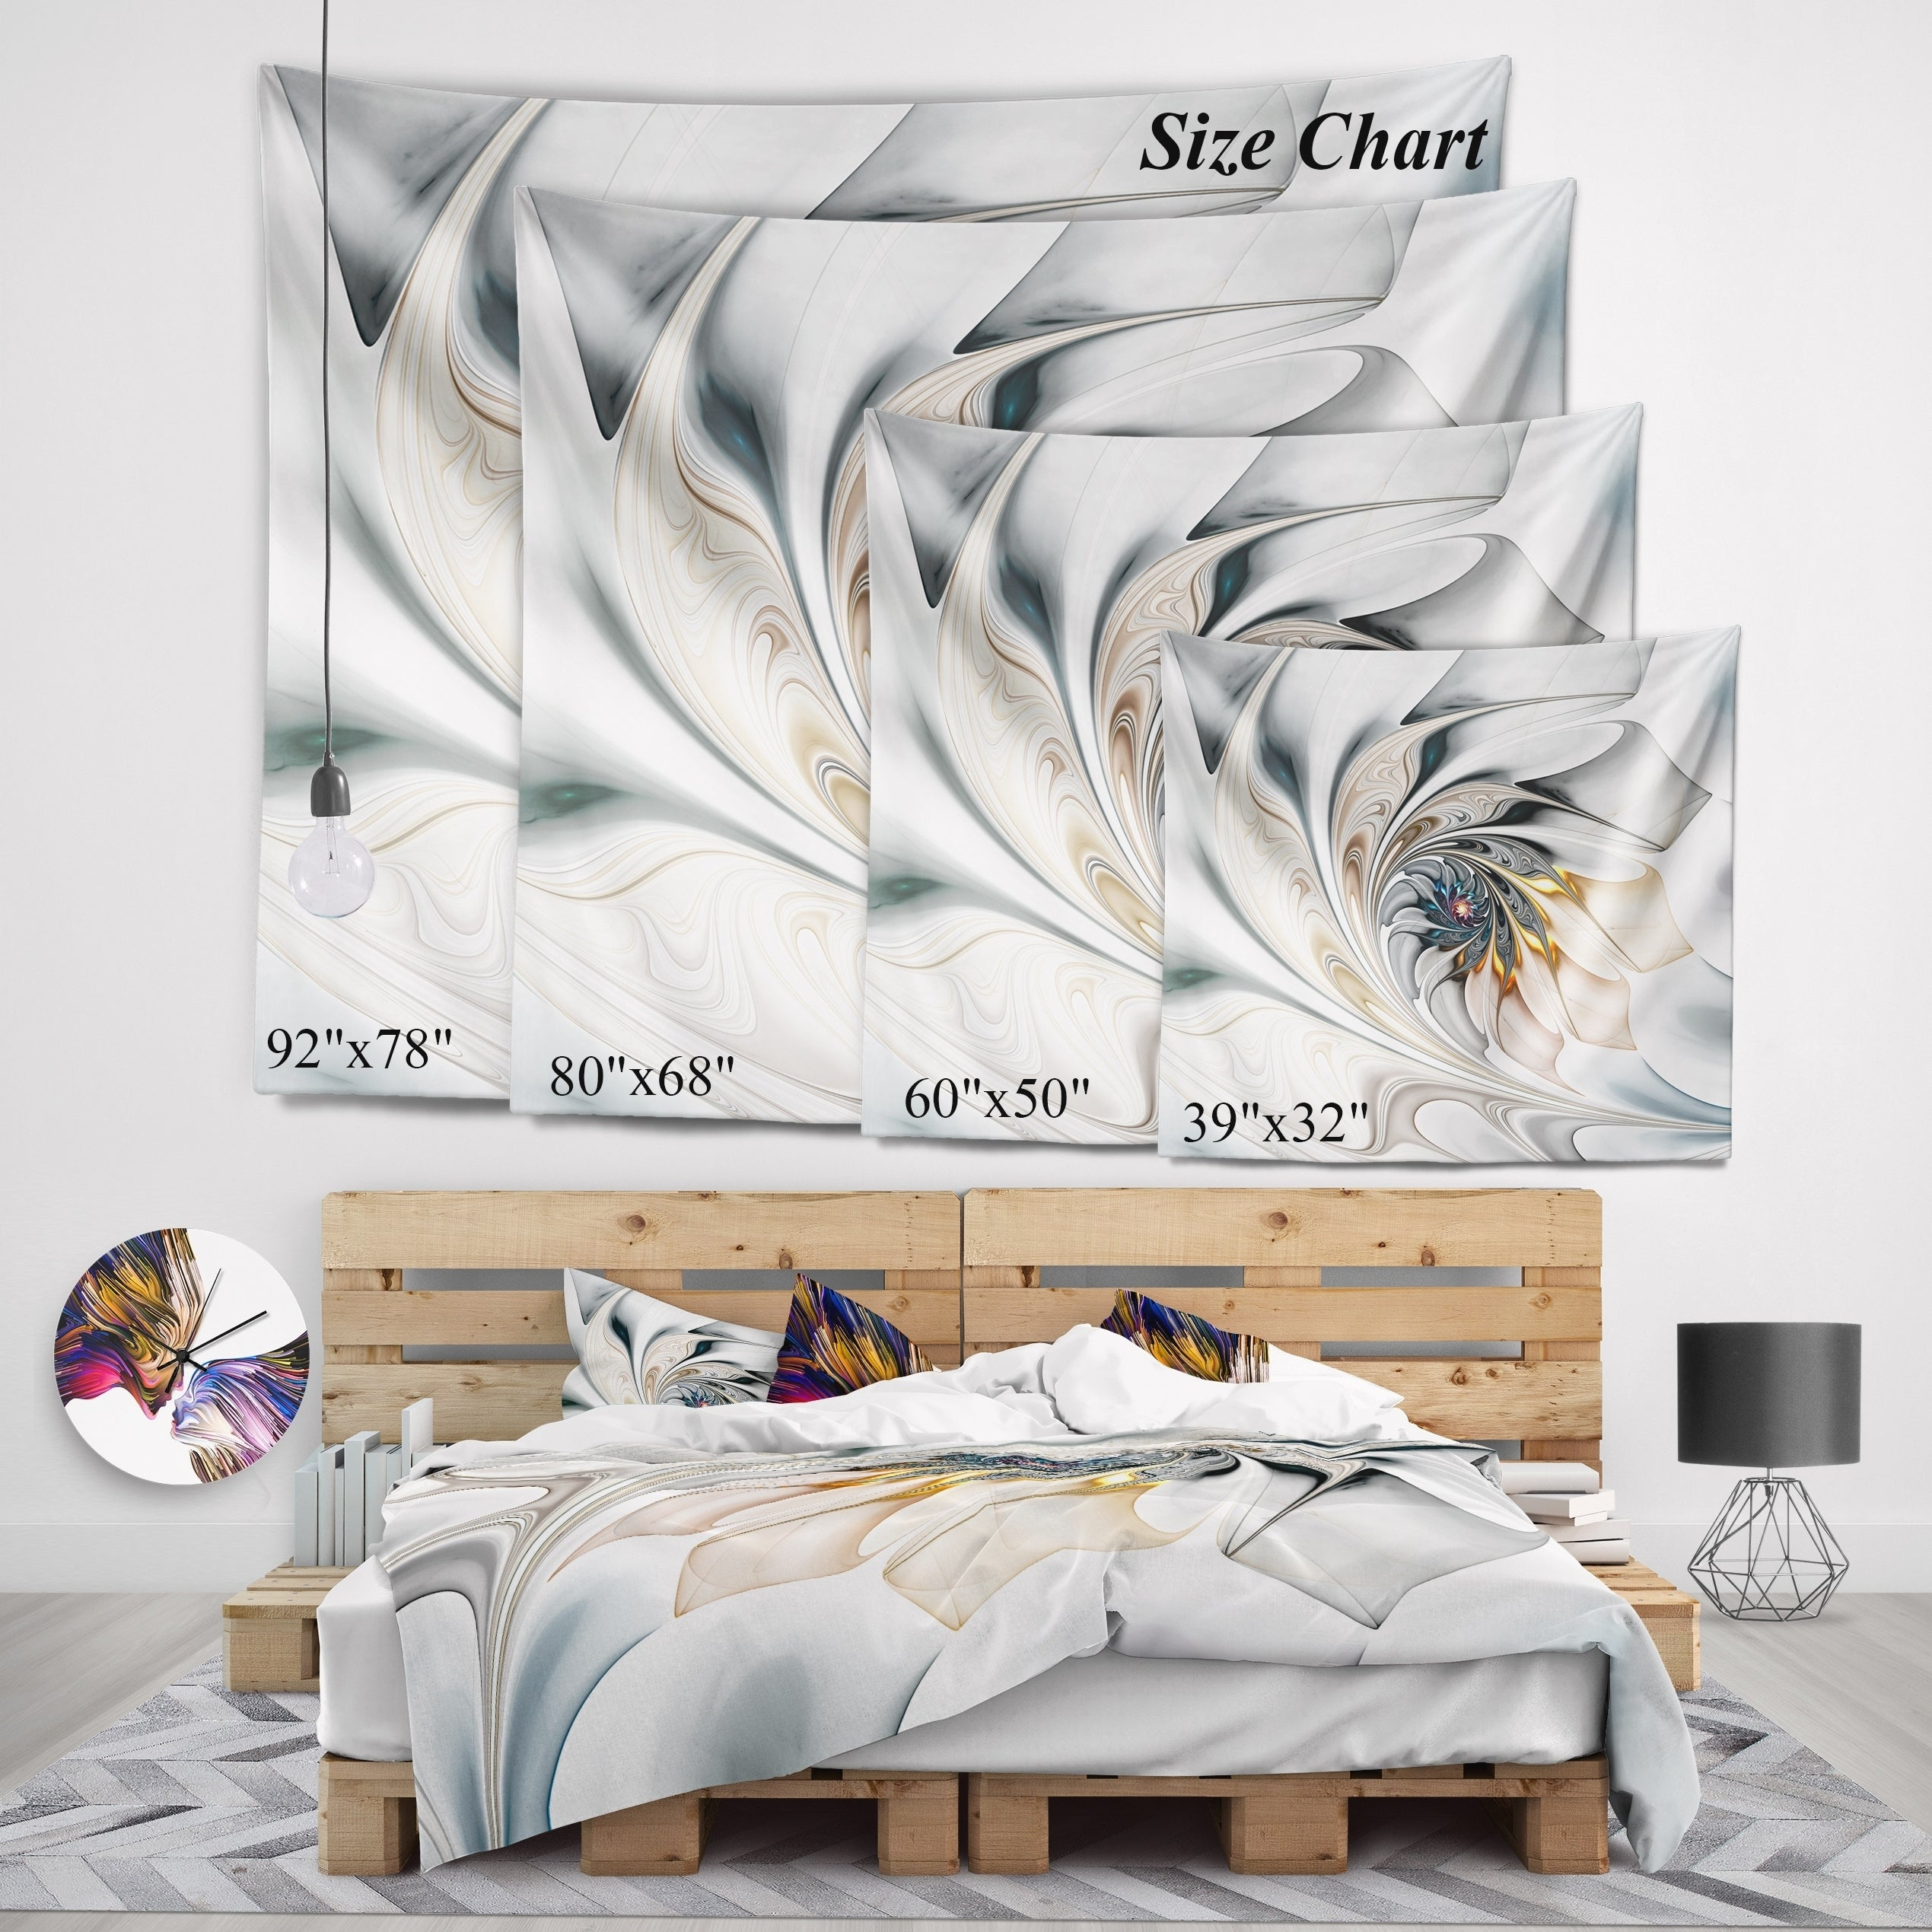 Shop For Designart Freehand Horse Head Pencil Drawing Animal Wall Tapestry Get Free Shipping On Everything At Overstock Your Online Home Decor Outlet Store Get 5 In Rewards With Club O 20929277